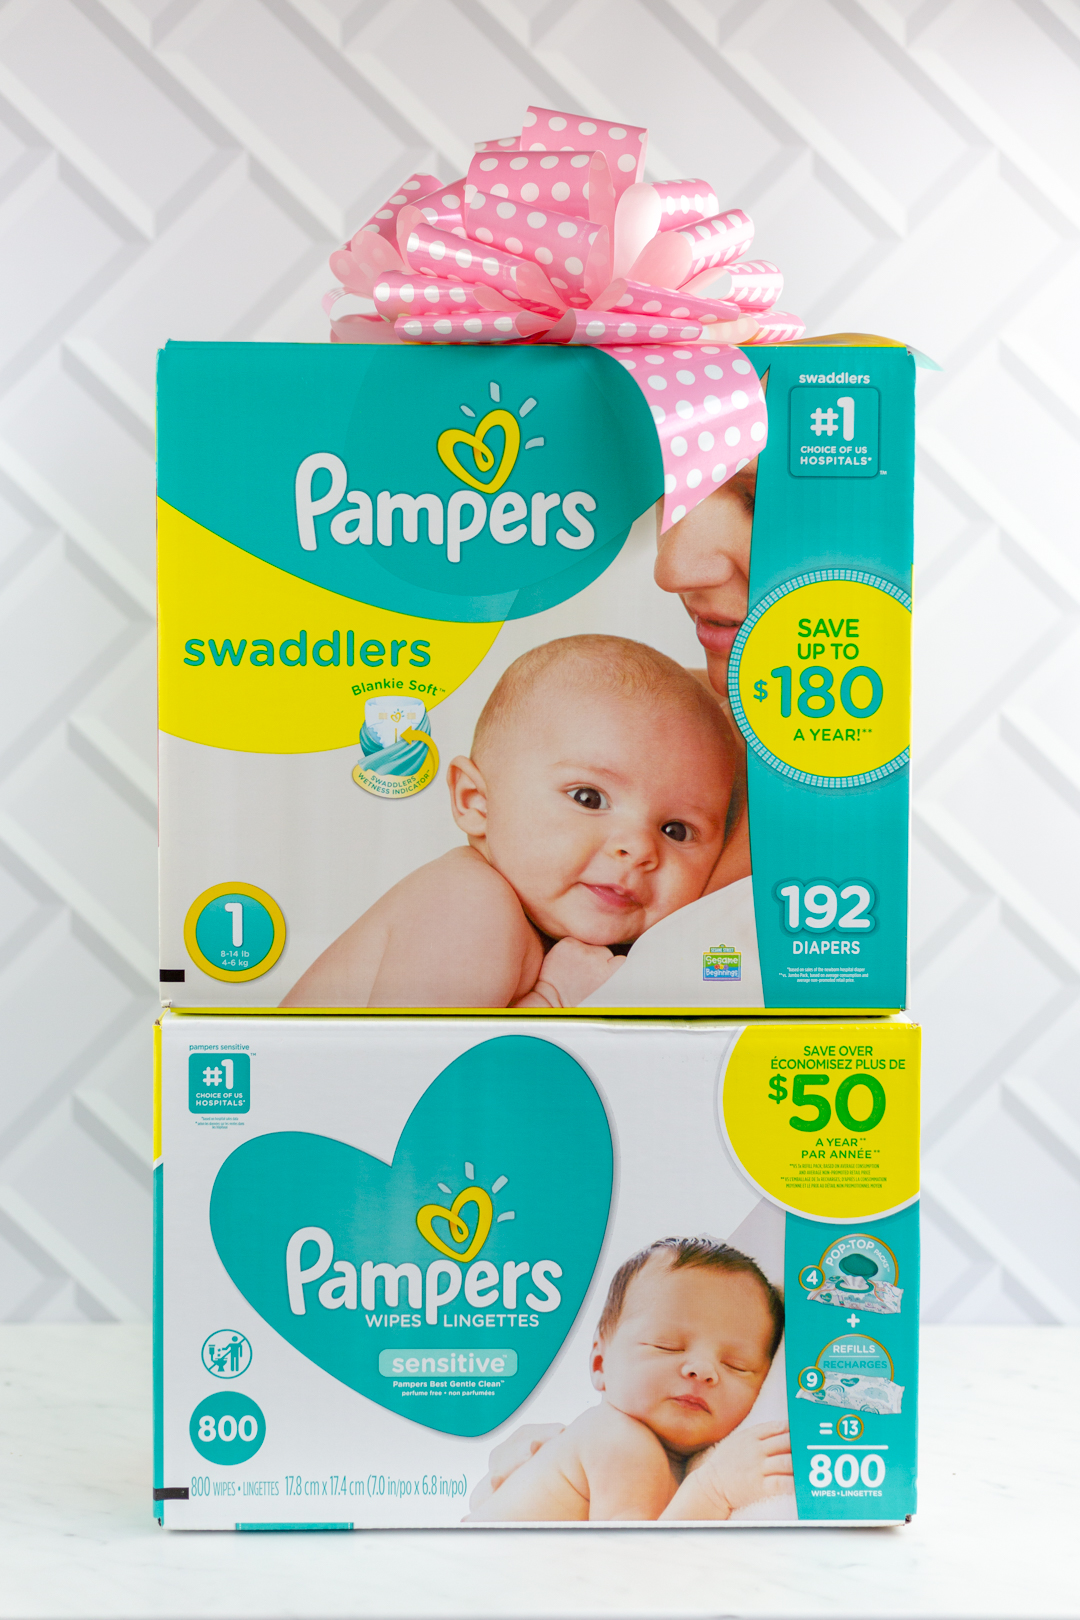 Pampers Swaddlers and Pampers Sensitive Wipes